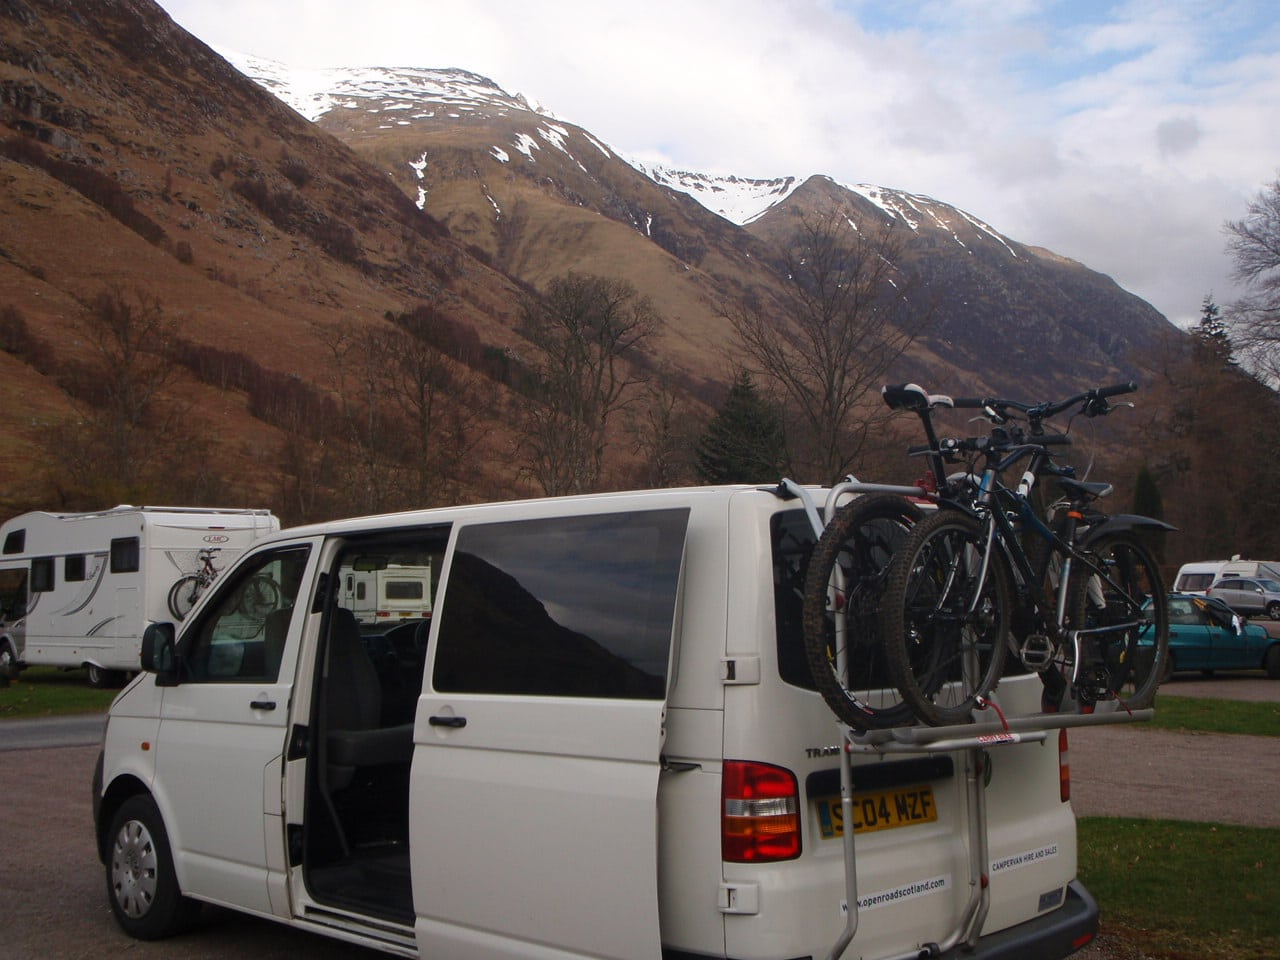 New  Hire Or Rent A Motorhome In Scotland  Scottish Tourer Motorhome Blog